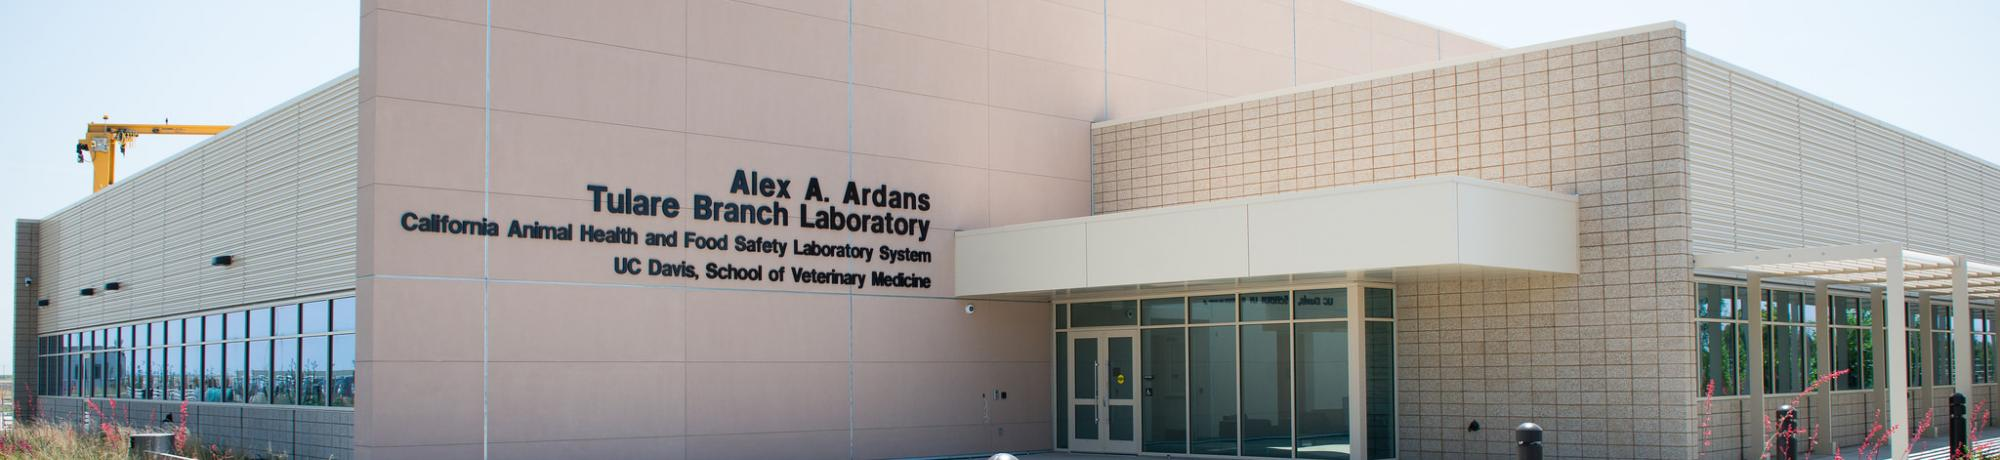 California Animal Health and Food Safety Laboratory in Tulare